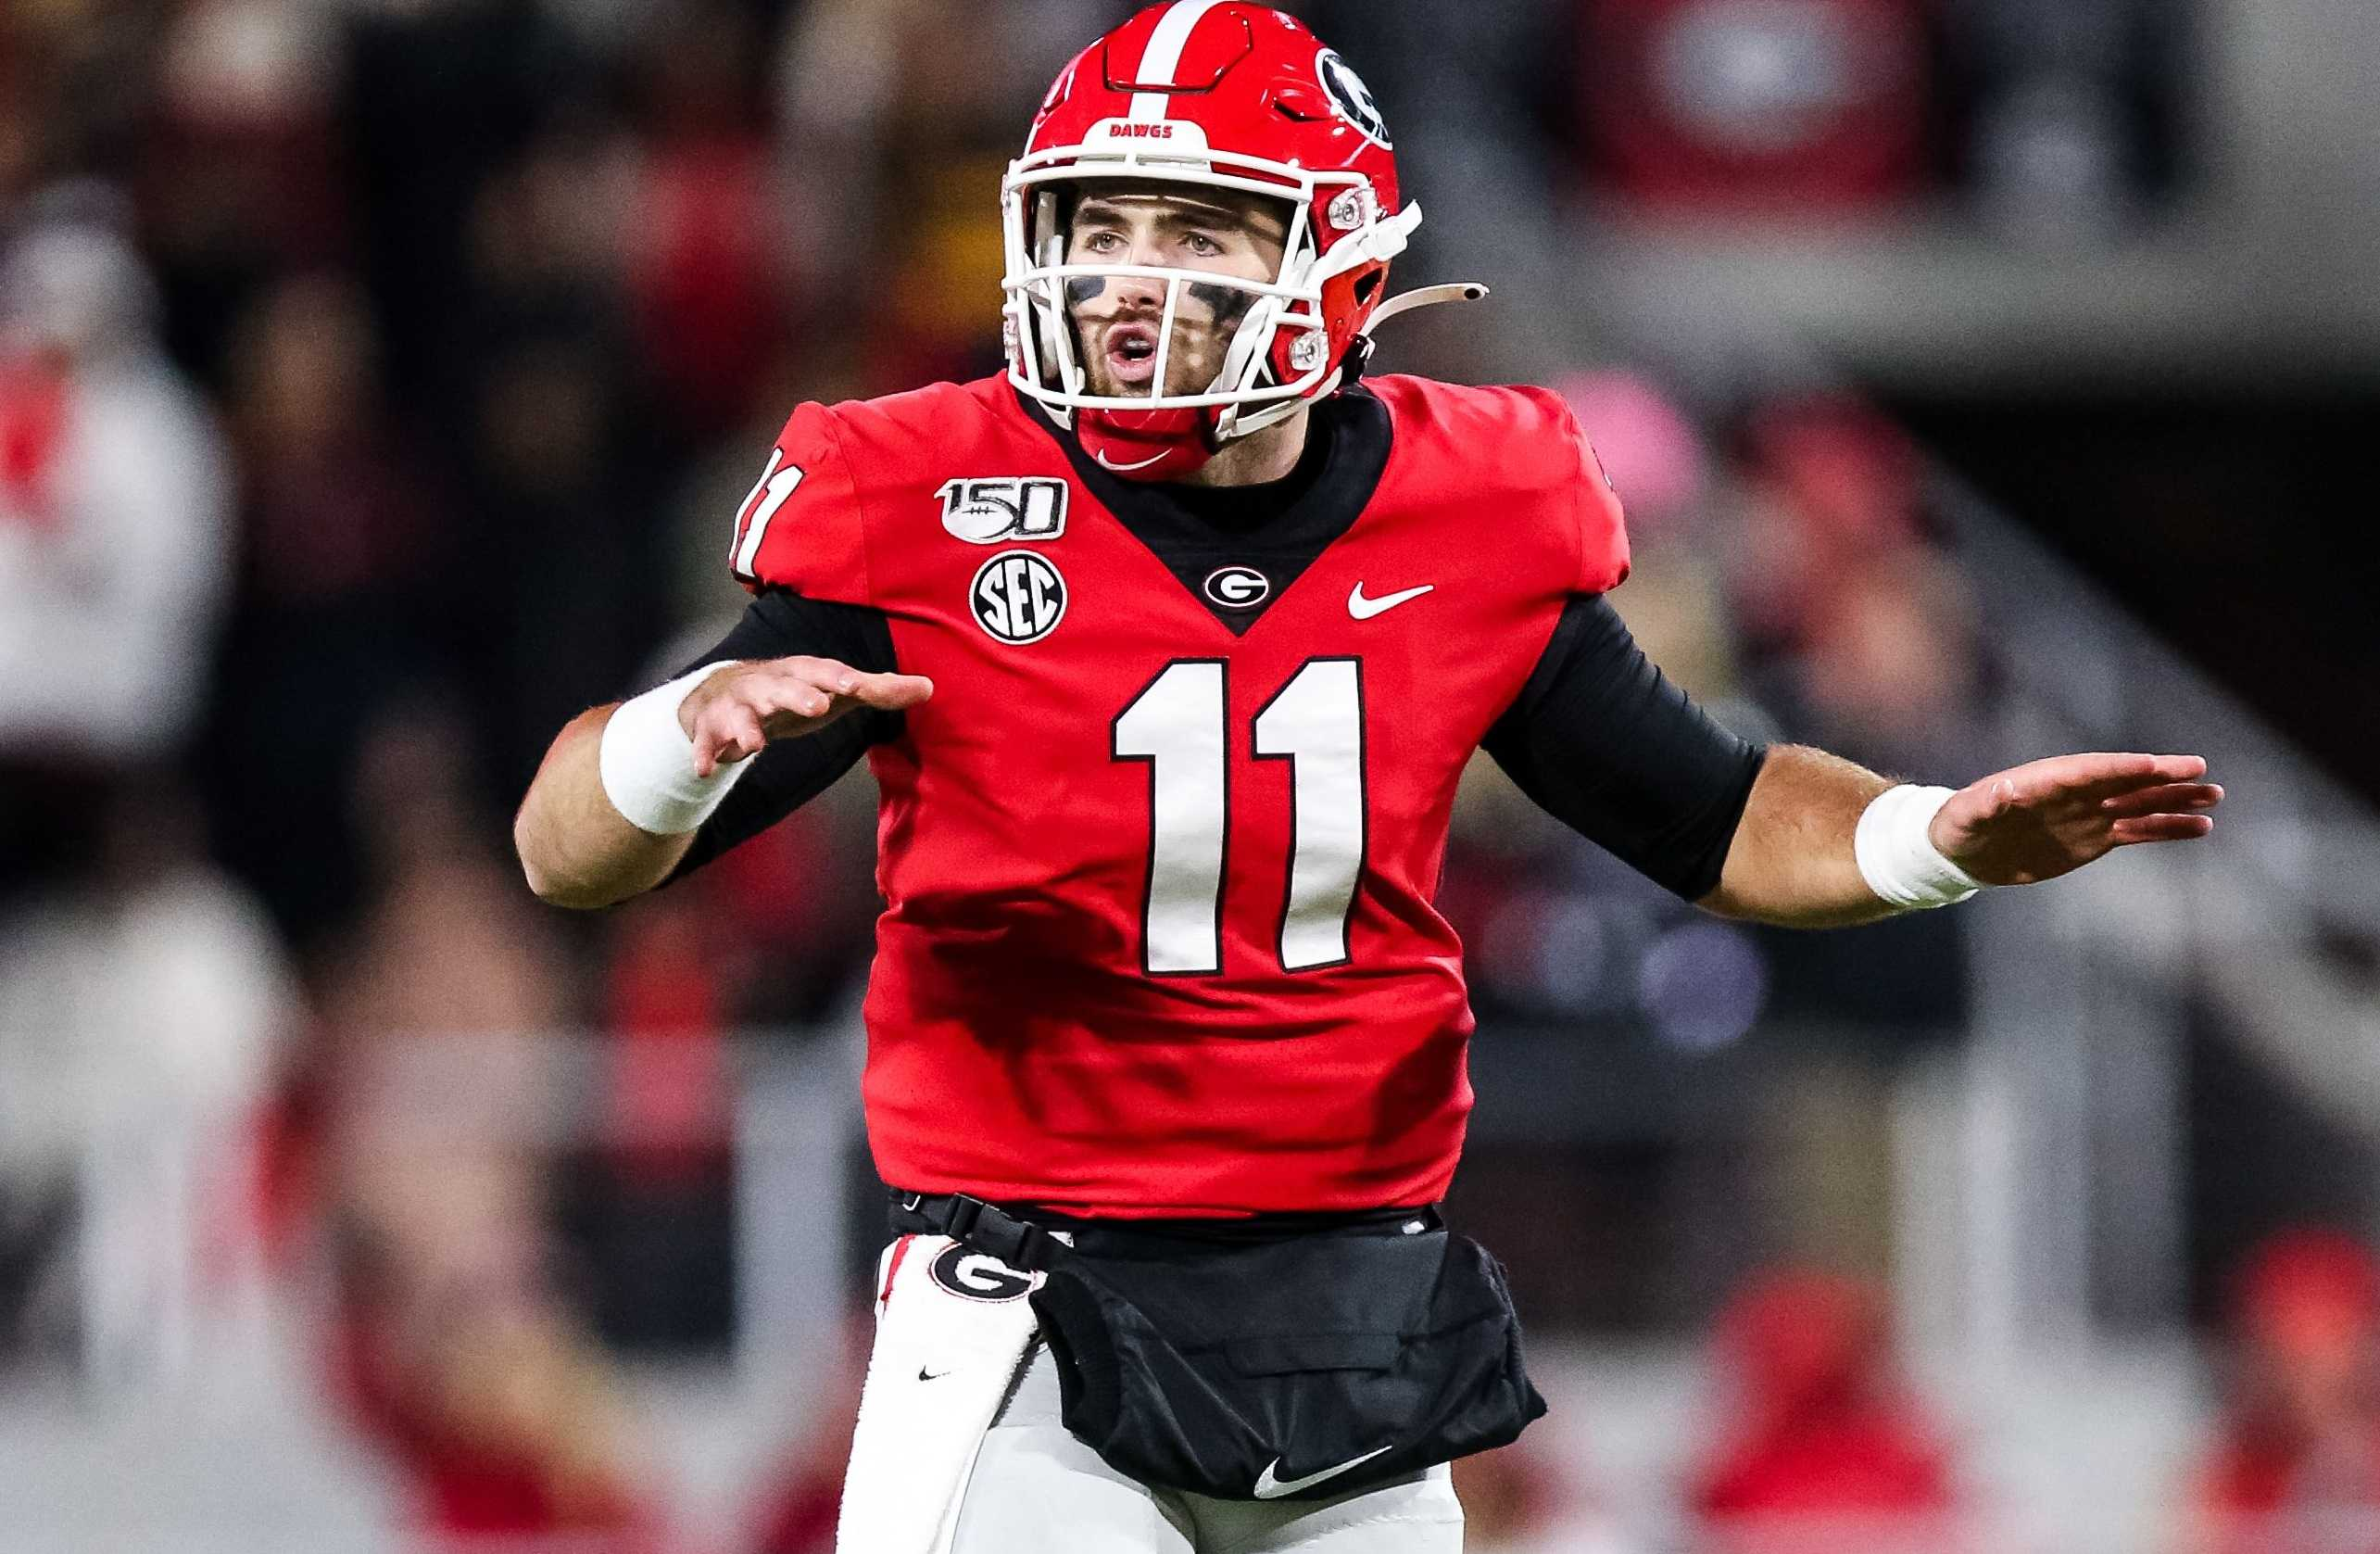 Jake Fromm stats